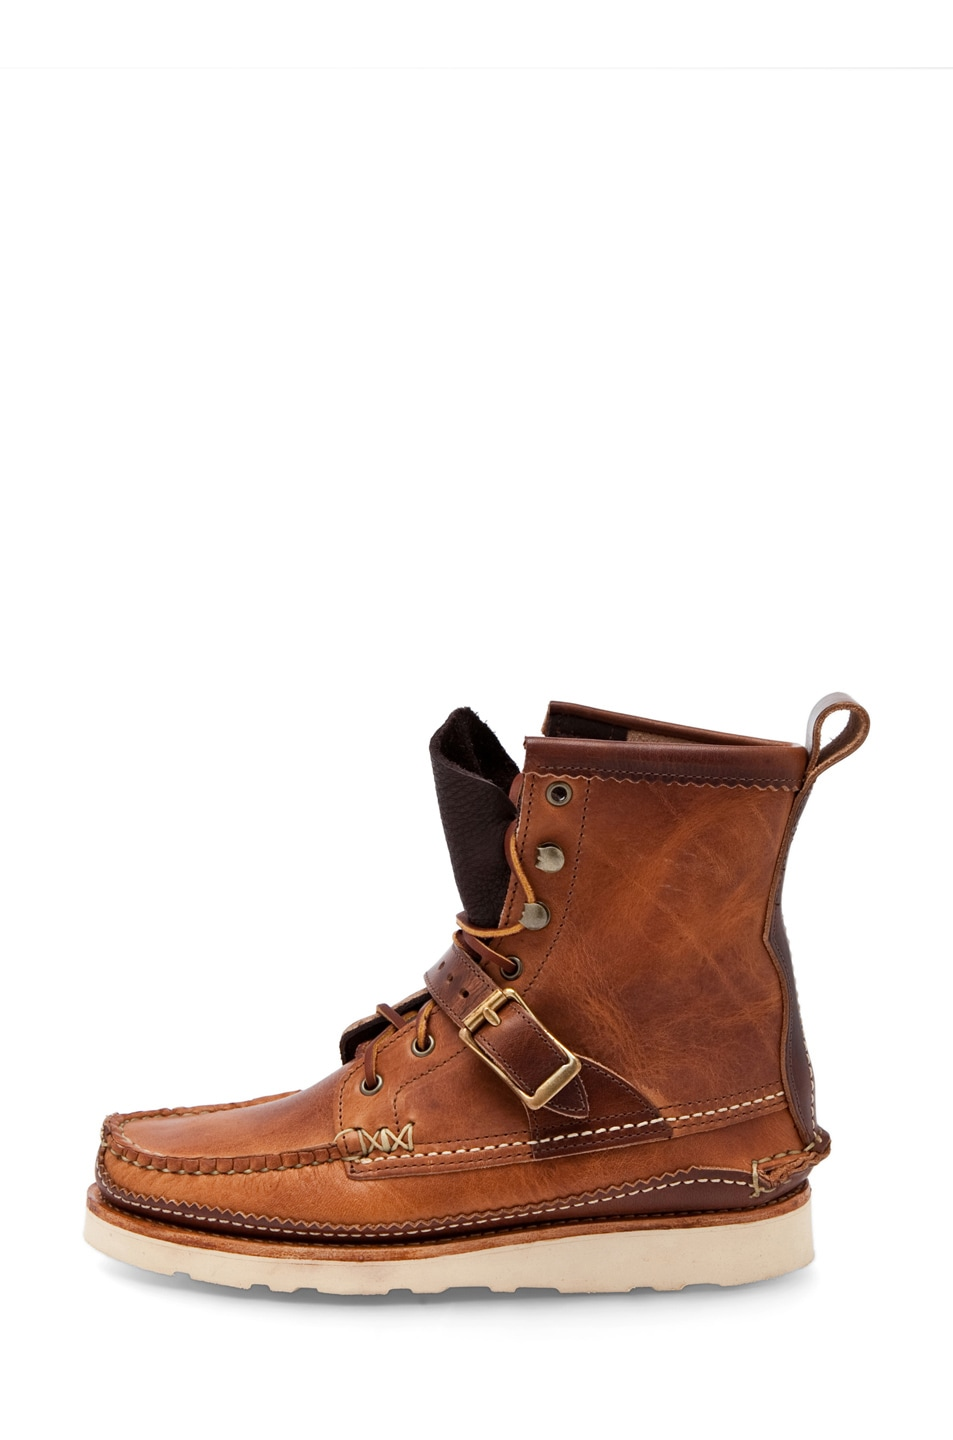 Image 1 of Yuketen D-Width (Normal) Maine Guide DB Strap Boots in D Natural